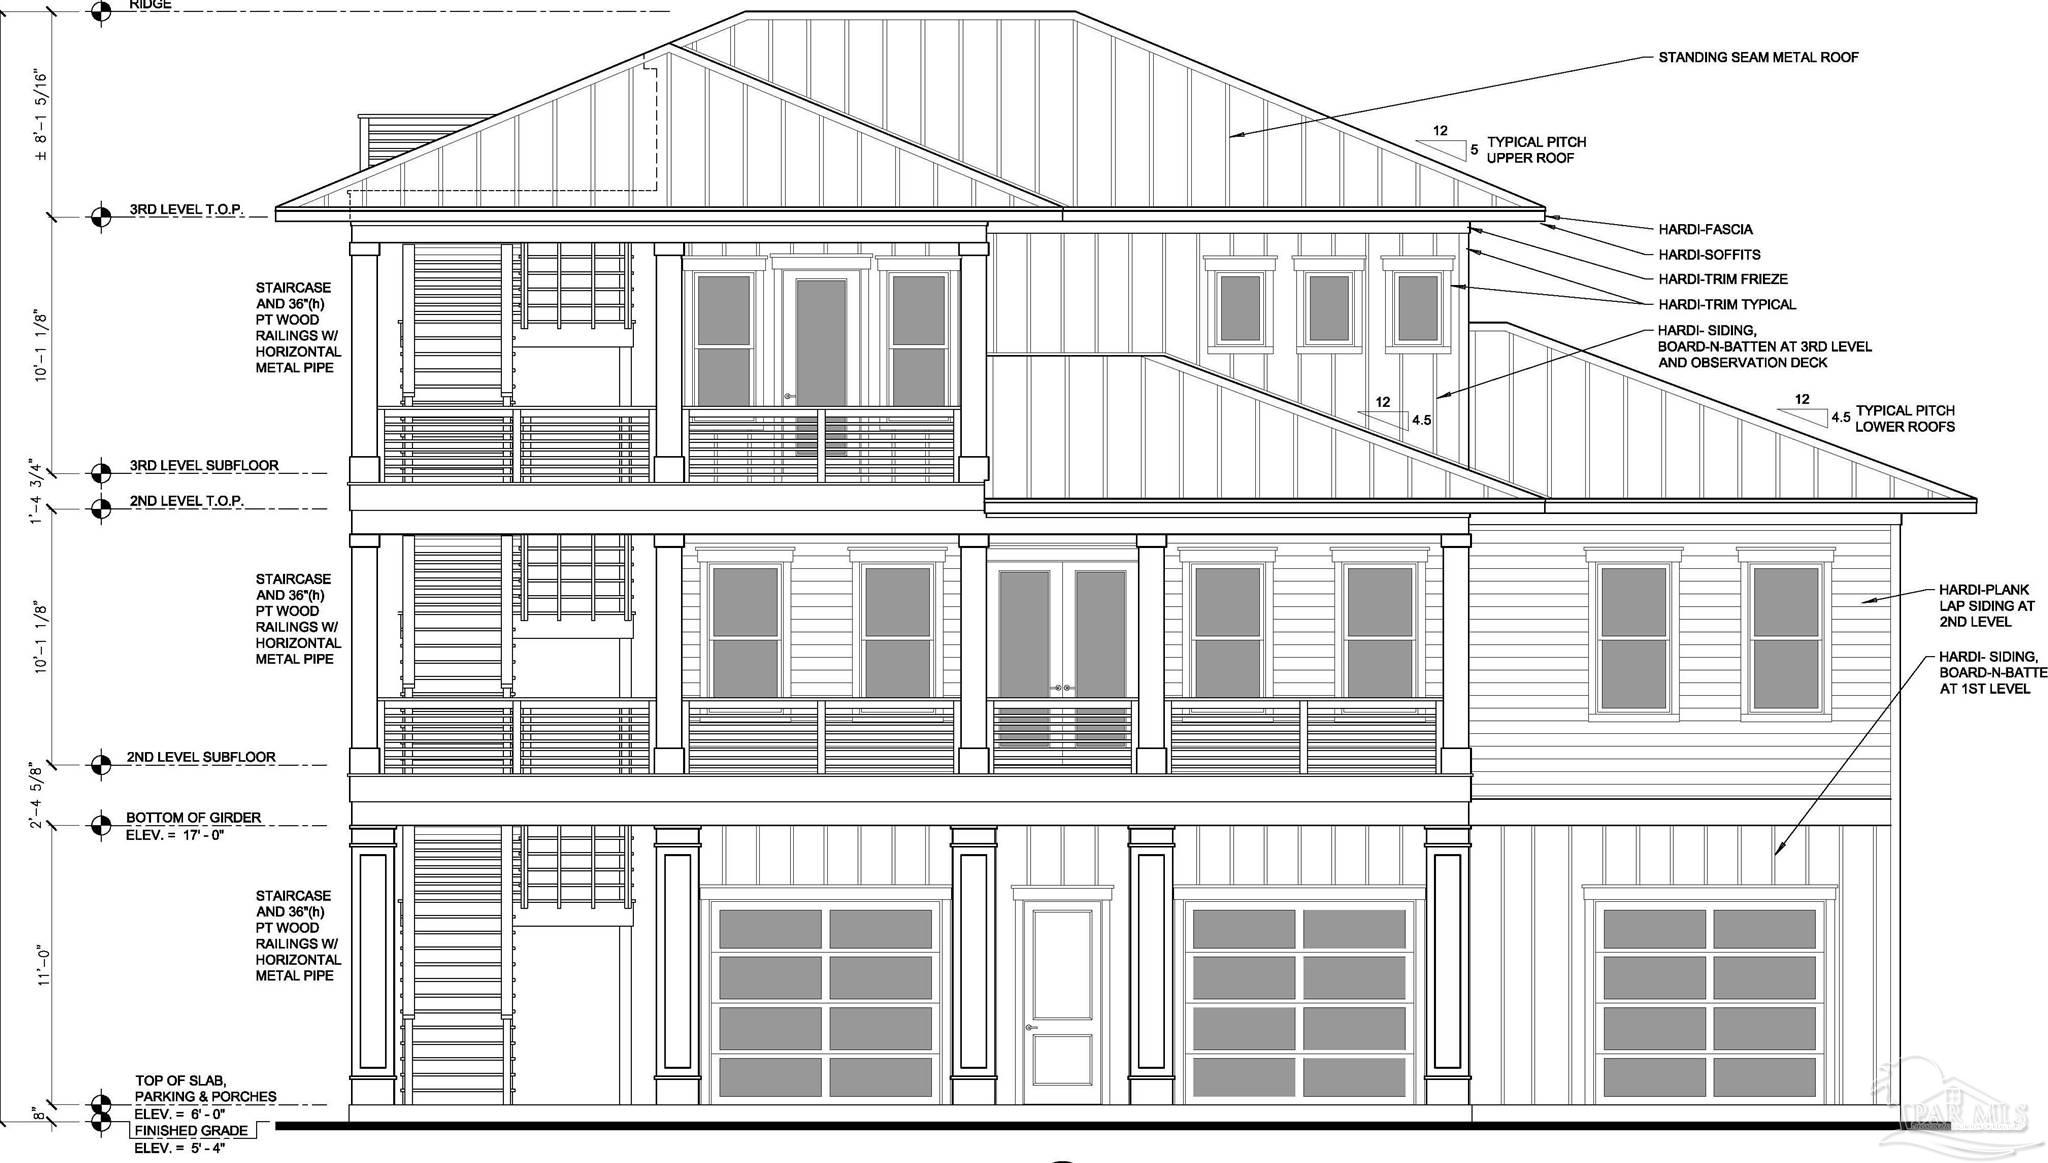 """Presenting Pensacola Beach's newest Custom Build Offering. Located in the 1300 block on the of Via Deluna, this large premium homesite is perfectly placed adjacent to a 15 ft walking easement that runs north & south from the public Gulf beach to the Sound which is owned & maintained by the Santa Rosa Island Authority. Its central beach placement is an easy stroll or bike ride to the epicenter of the Pensacola Beach hub where you'll find casual & fine dining restaurants, jet ski rentals, dolphin tours, fishing charters, para sailing, scuba charters, paddle board classes & more. Its Elite Caliber finishes are enveloped by highly efficient dollar saving home hardening construction materials & applications installed by the best craftsmen in the business. This extra attention to detail offers significant insurance, utility & maintenance savings with its low maintenance construction. Enhanced efficiency standards include: larger 14"""" pilings versus 12"""" installed to 20'ft piling ground depth versus 15'ft standard; built 17' ft above sea level 5 ft above the insurable base flood elevation of 12 ft; all stainless steel fasteners; structural soffits; go bolt threaded rod anchoring system; spray foam insulation; double pane low-e impact windows and doors; metal standing seam roof w peel & stick secondary ice & water shield & 100% genuine James Hardy exterior wall & trim materials & 230SF waterview rooftop observation deck. The enhanced floorplan includes 4 spacious brs & 3 &1/2bths w master suite at the 3rd level. The 2nd br has an onsuite & bdrms 3-4 are serviced by a jack & jill. The 3rd level master suite has a walkin closet & elevated Sound views from its covered balcony. The Master bath includes double vanity sink and custom multihead shower. Optional amenities at additional cost: elevator servicing all living levels; coffee bar w mini fridge & sink at the 3rd level; outdoor kitchen;  pool. Build timelines appx 8 mths via strategic construction planning & material orders."""